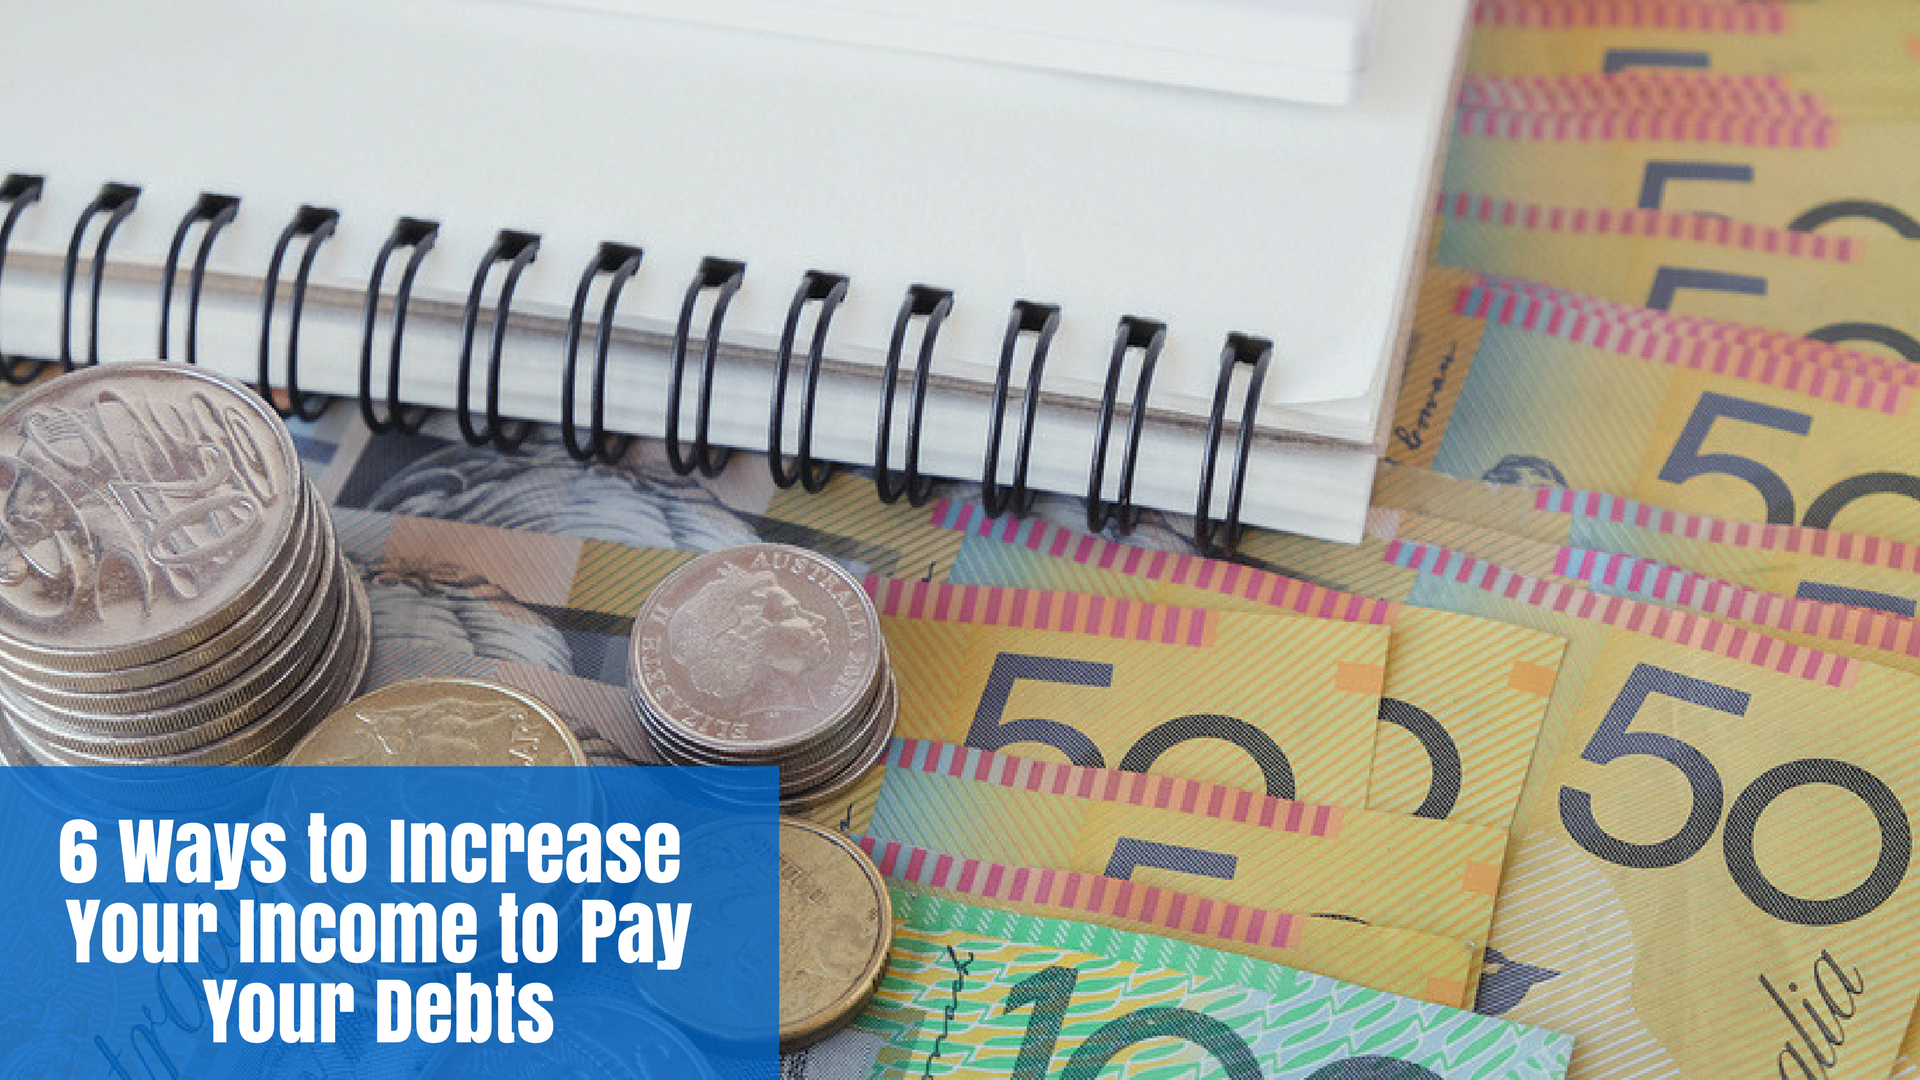 6 Ways to Increase Your Income to Pay Your Debts